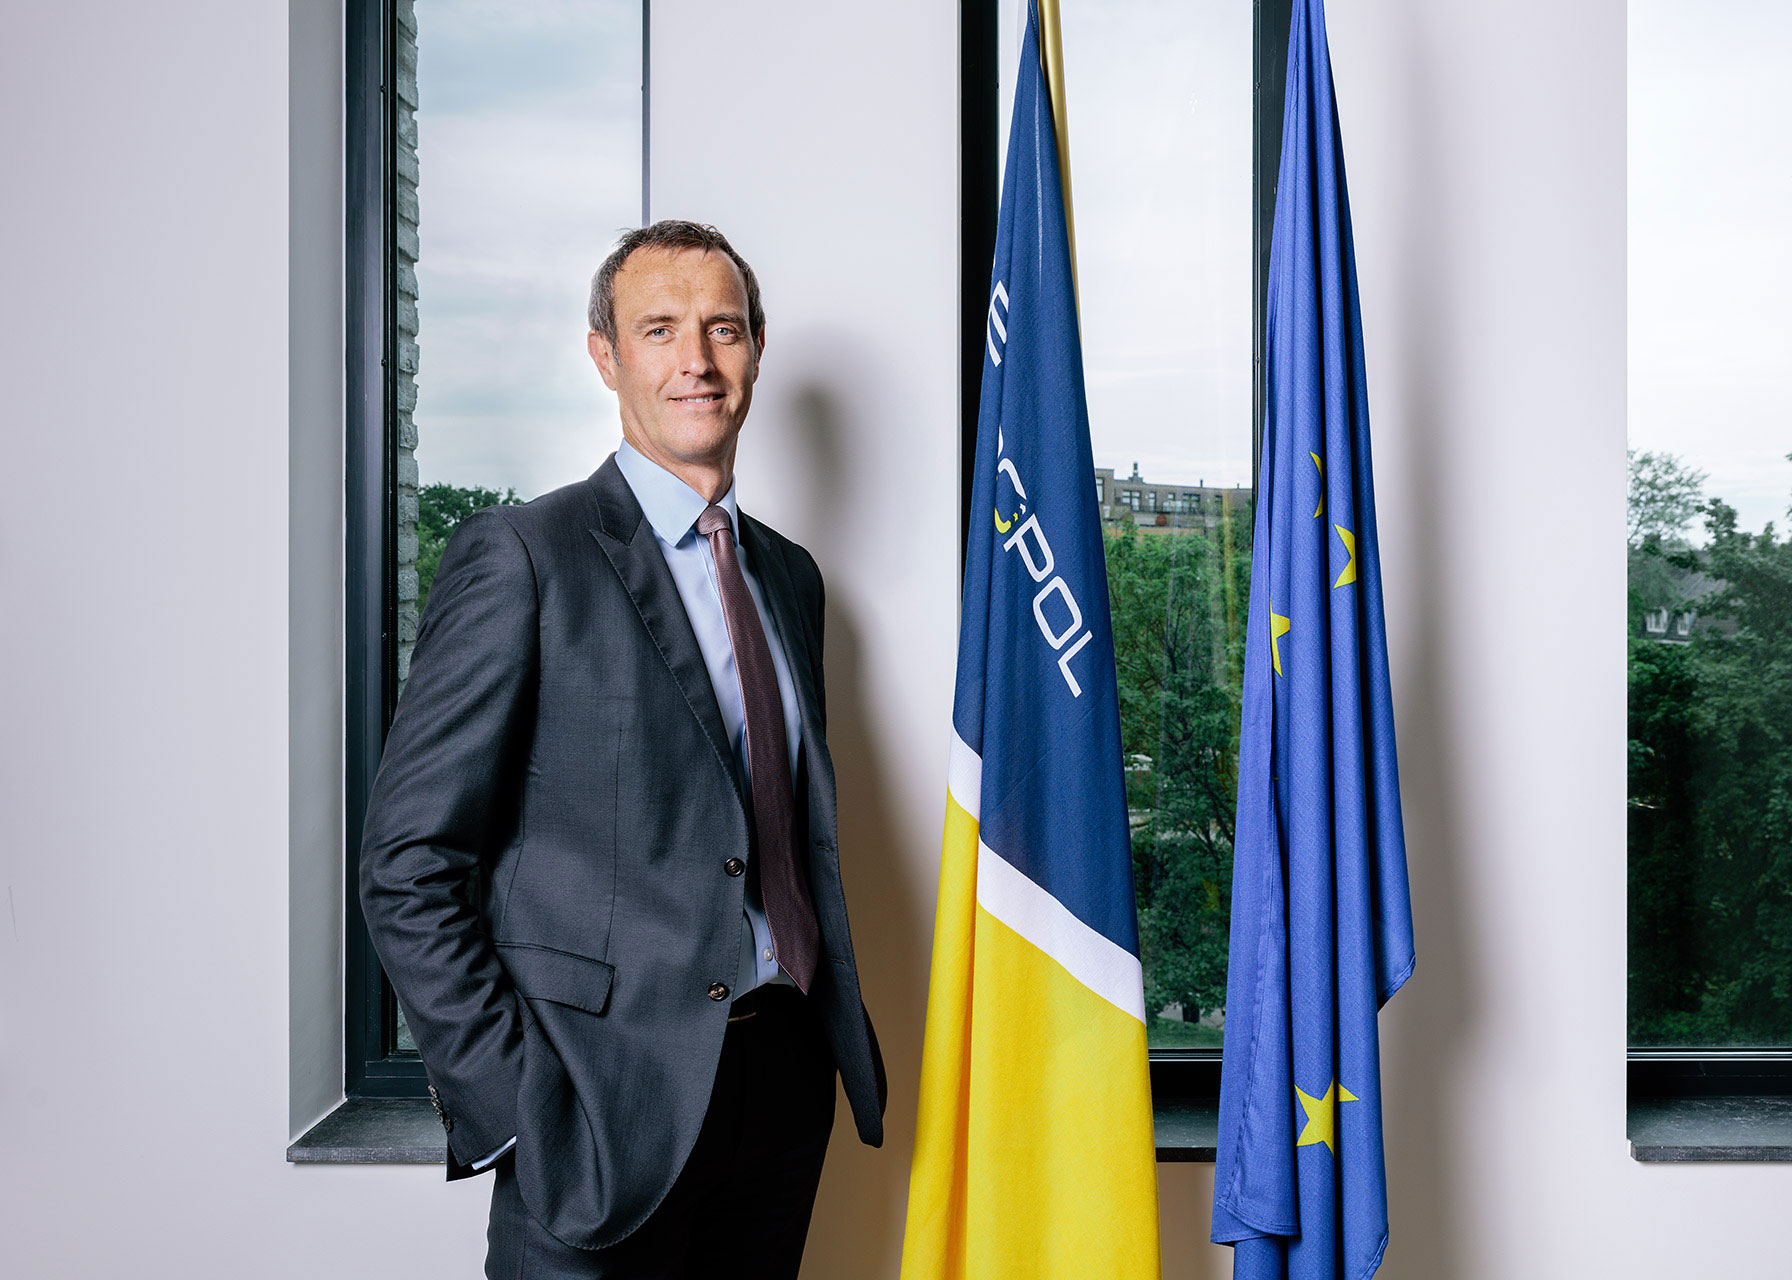 Rob Wainwright, Director of Europol